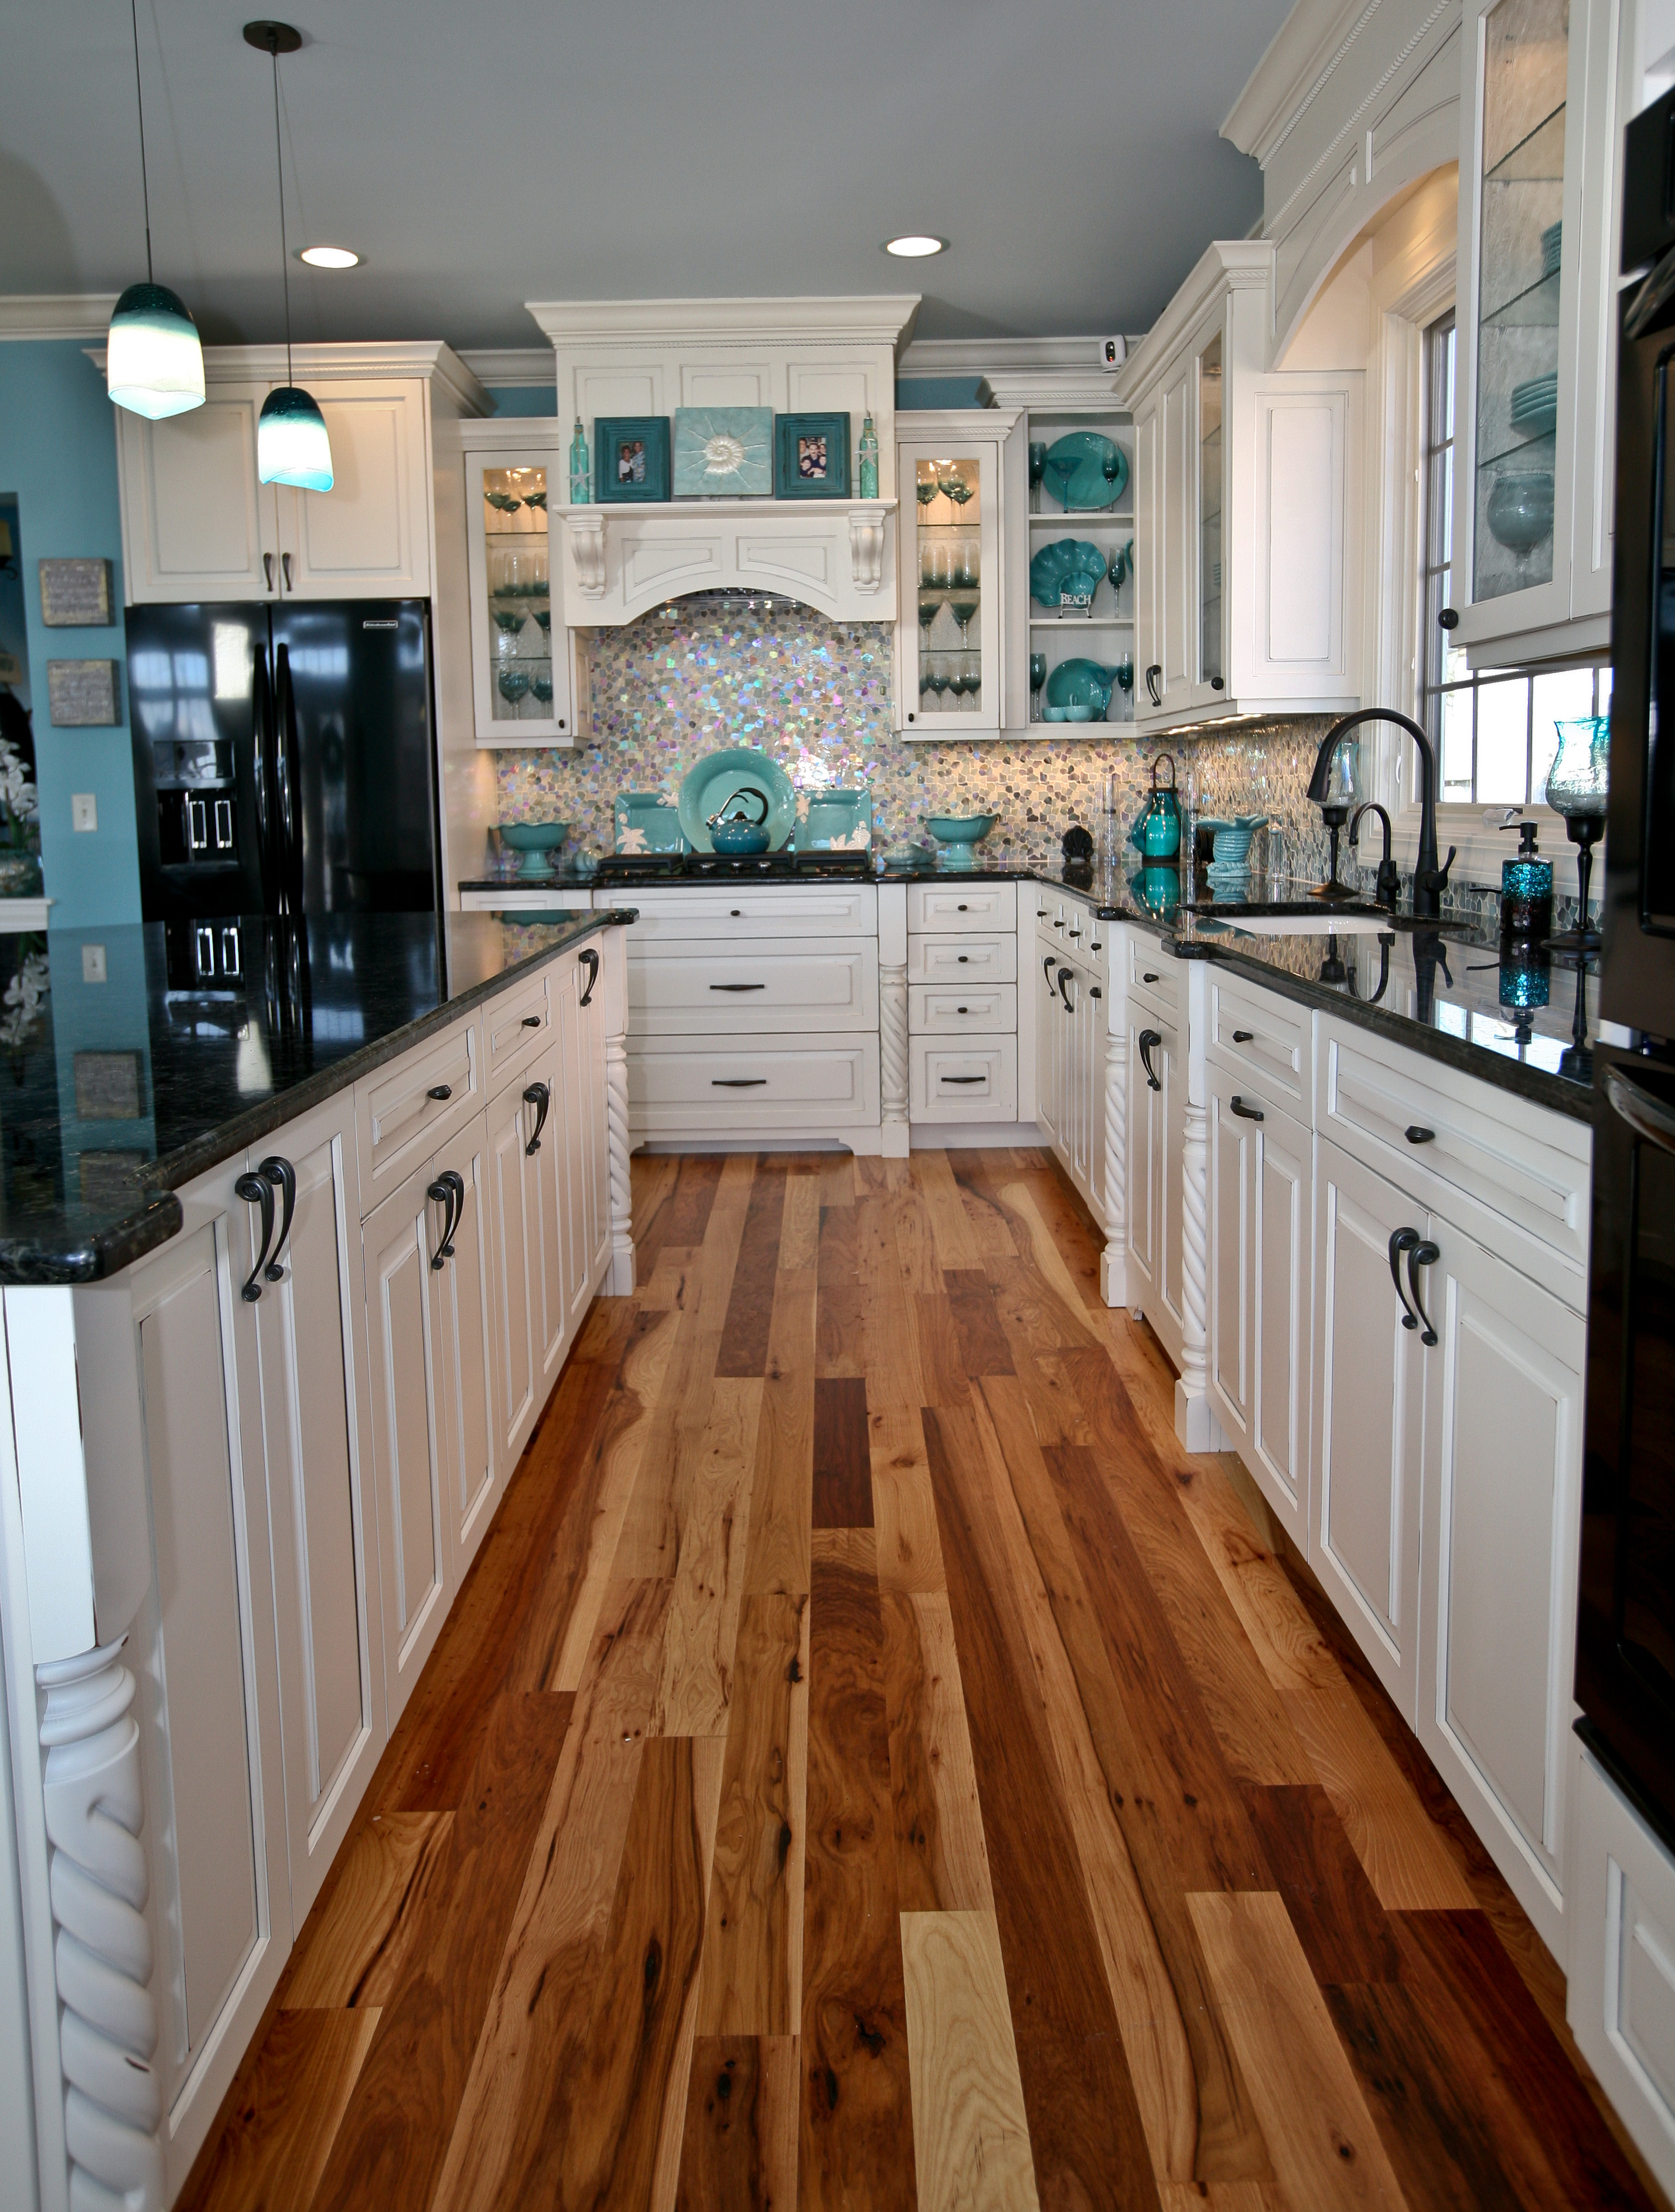 Fabulous Kitchens teal appeal kitchen point pleasant new jerseydesign line kitchens